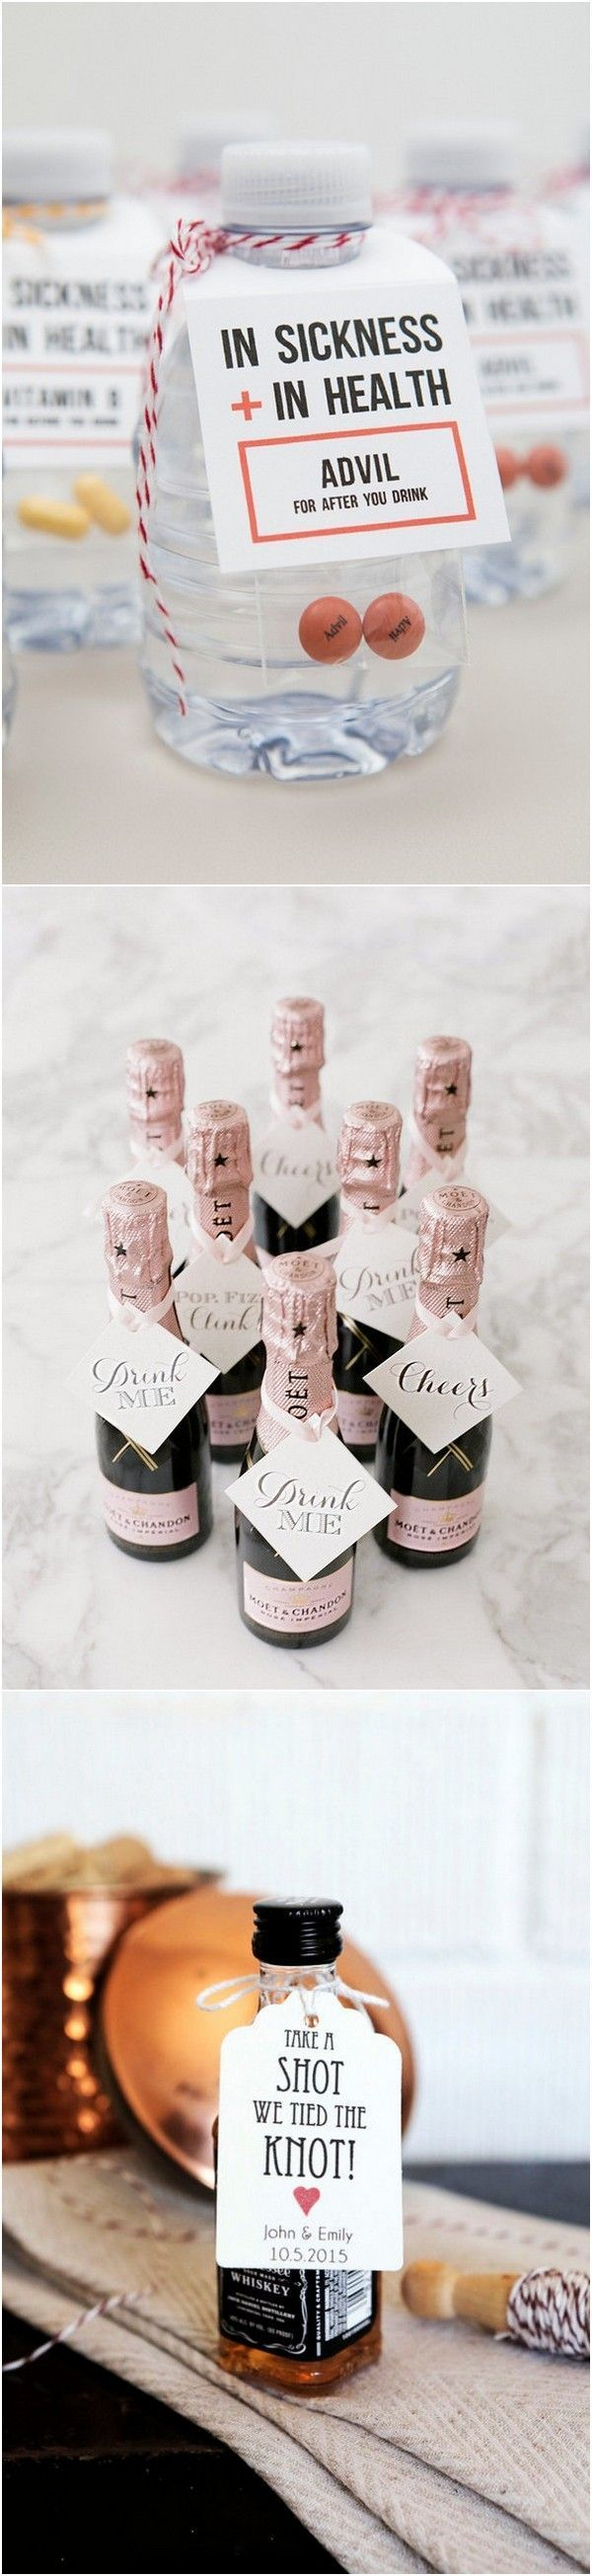 Cute, fun and unique alternative wedding favor ideas! These would be the perfect thing to put in your destination wedding welcome bags!